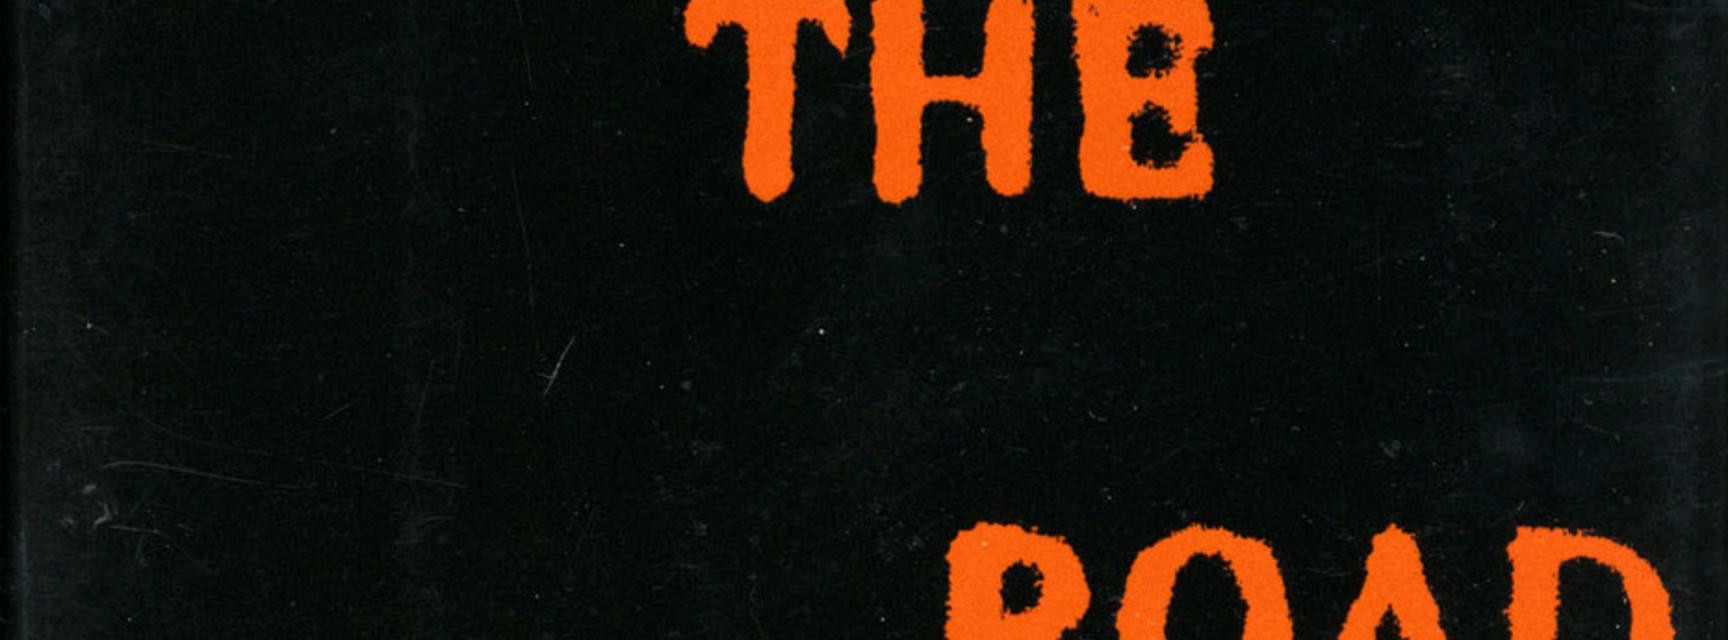 Cover of The Road by Cormac McCarthy